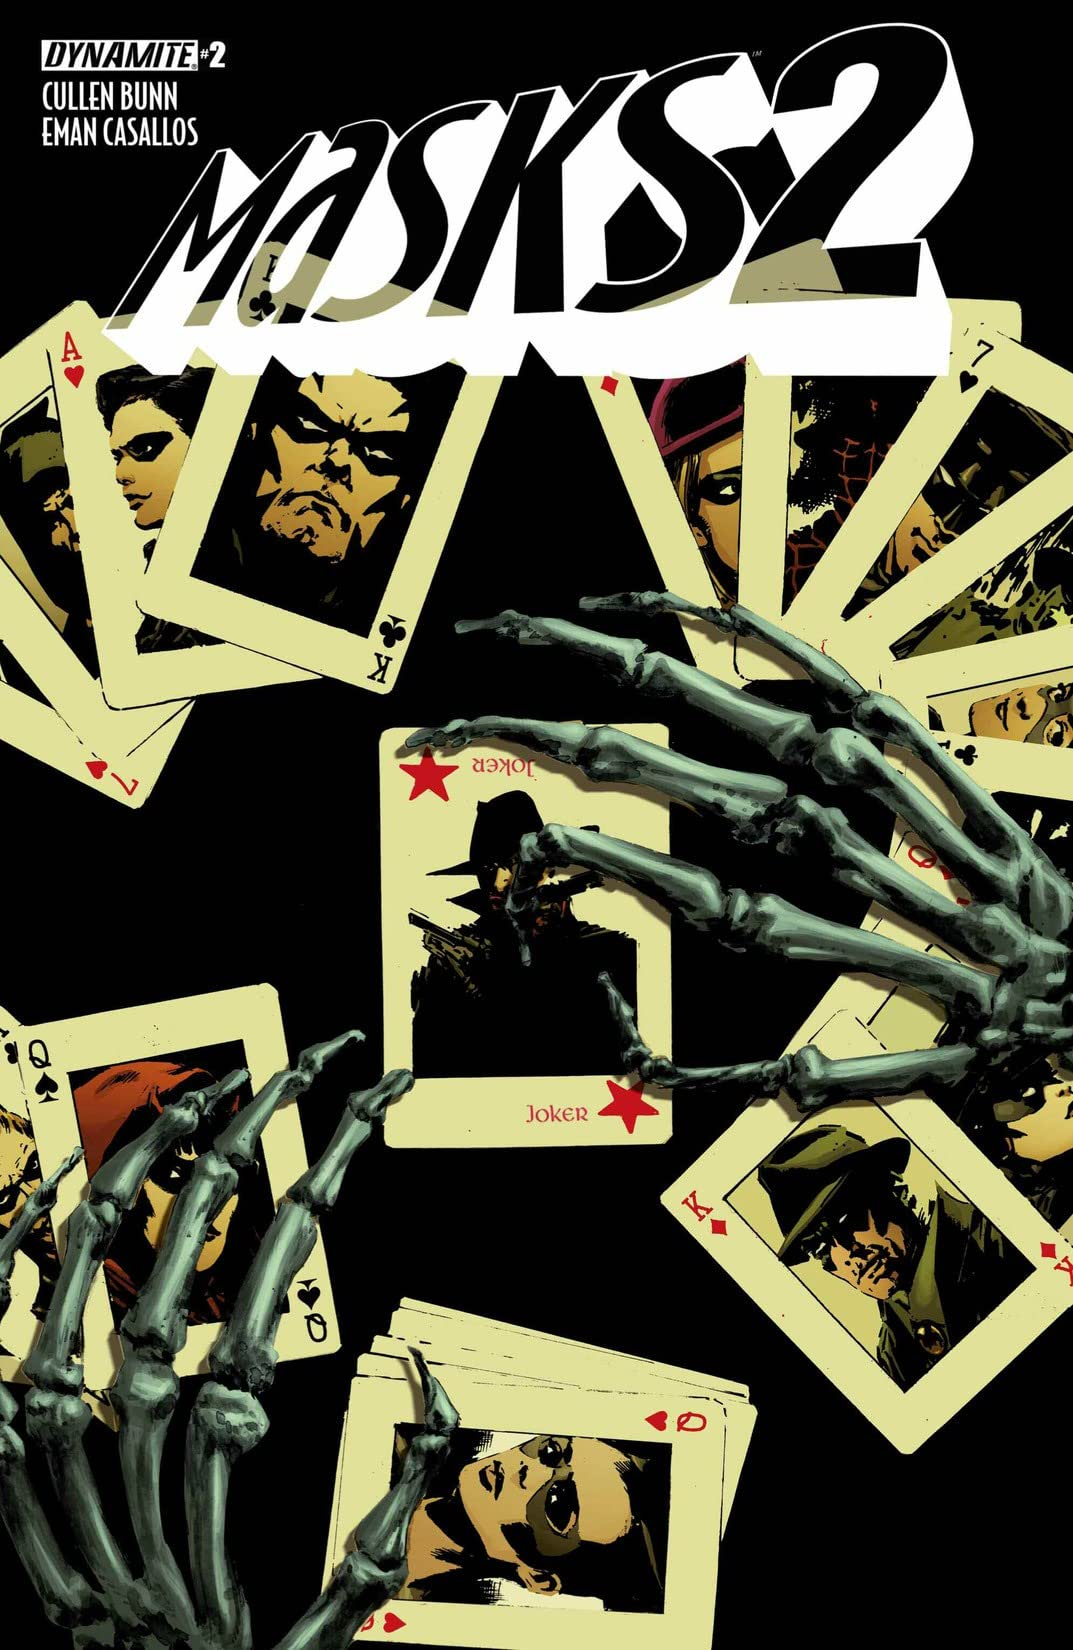 Masks 2 #2 (of 8): Digital Exclusive Edition